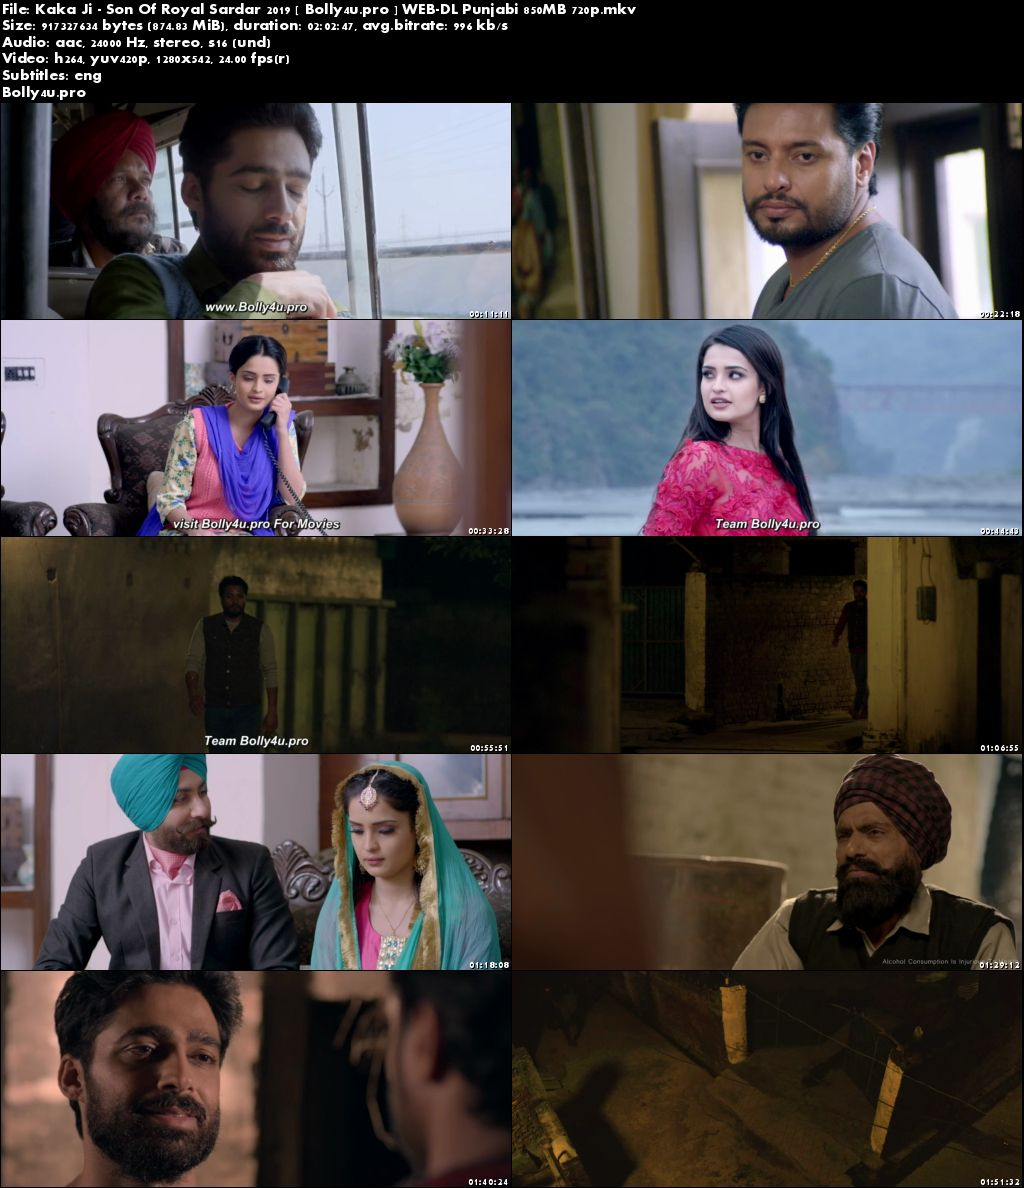 Kaka Ji Son Of Royal Sardar 2019 WEB-DL 850MB Punjabi 720p Download